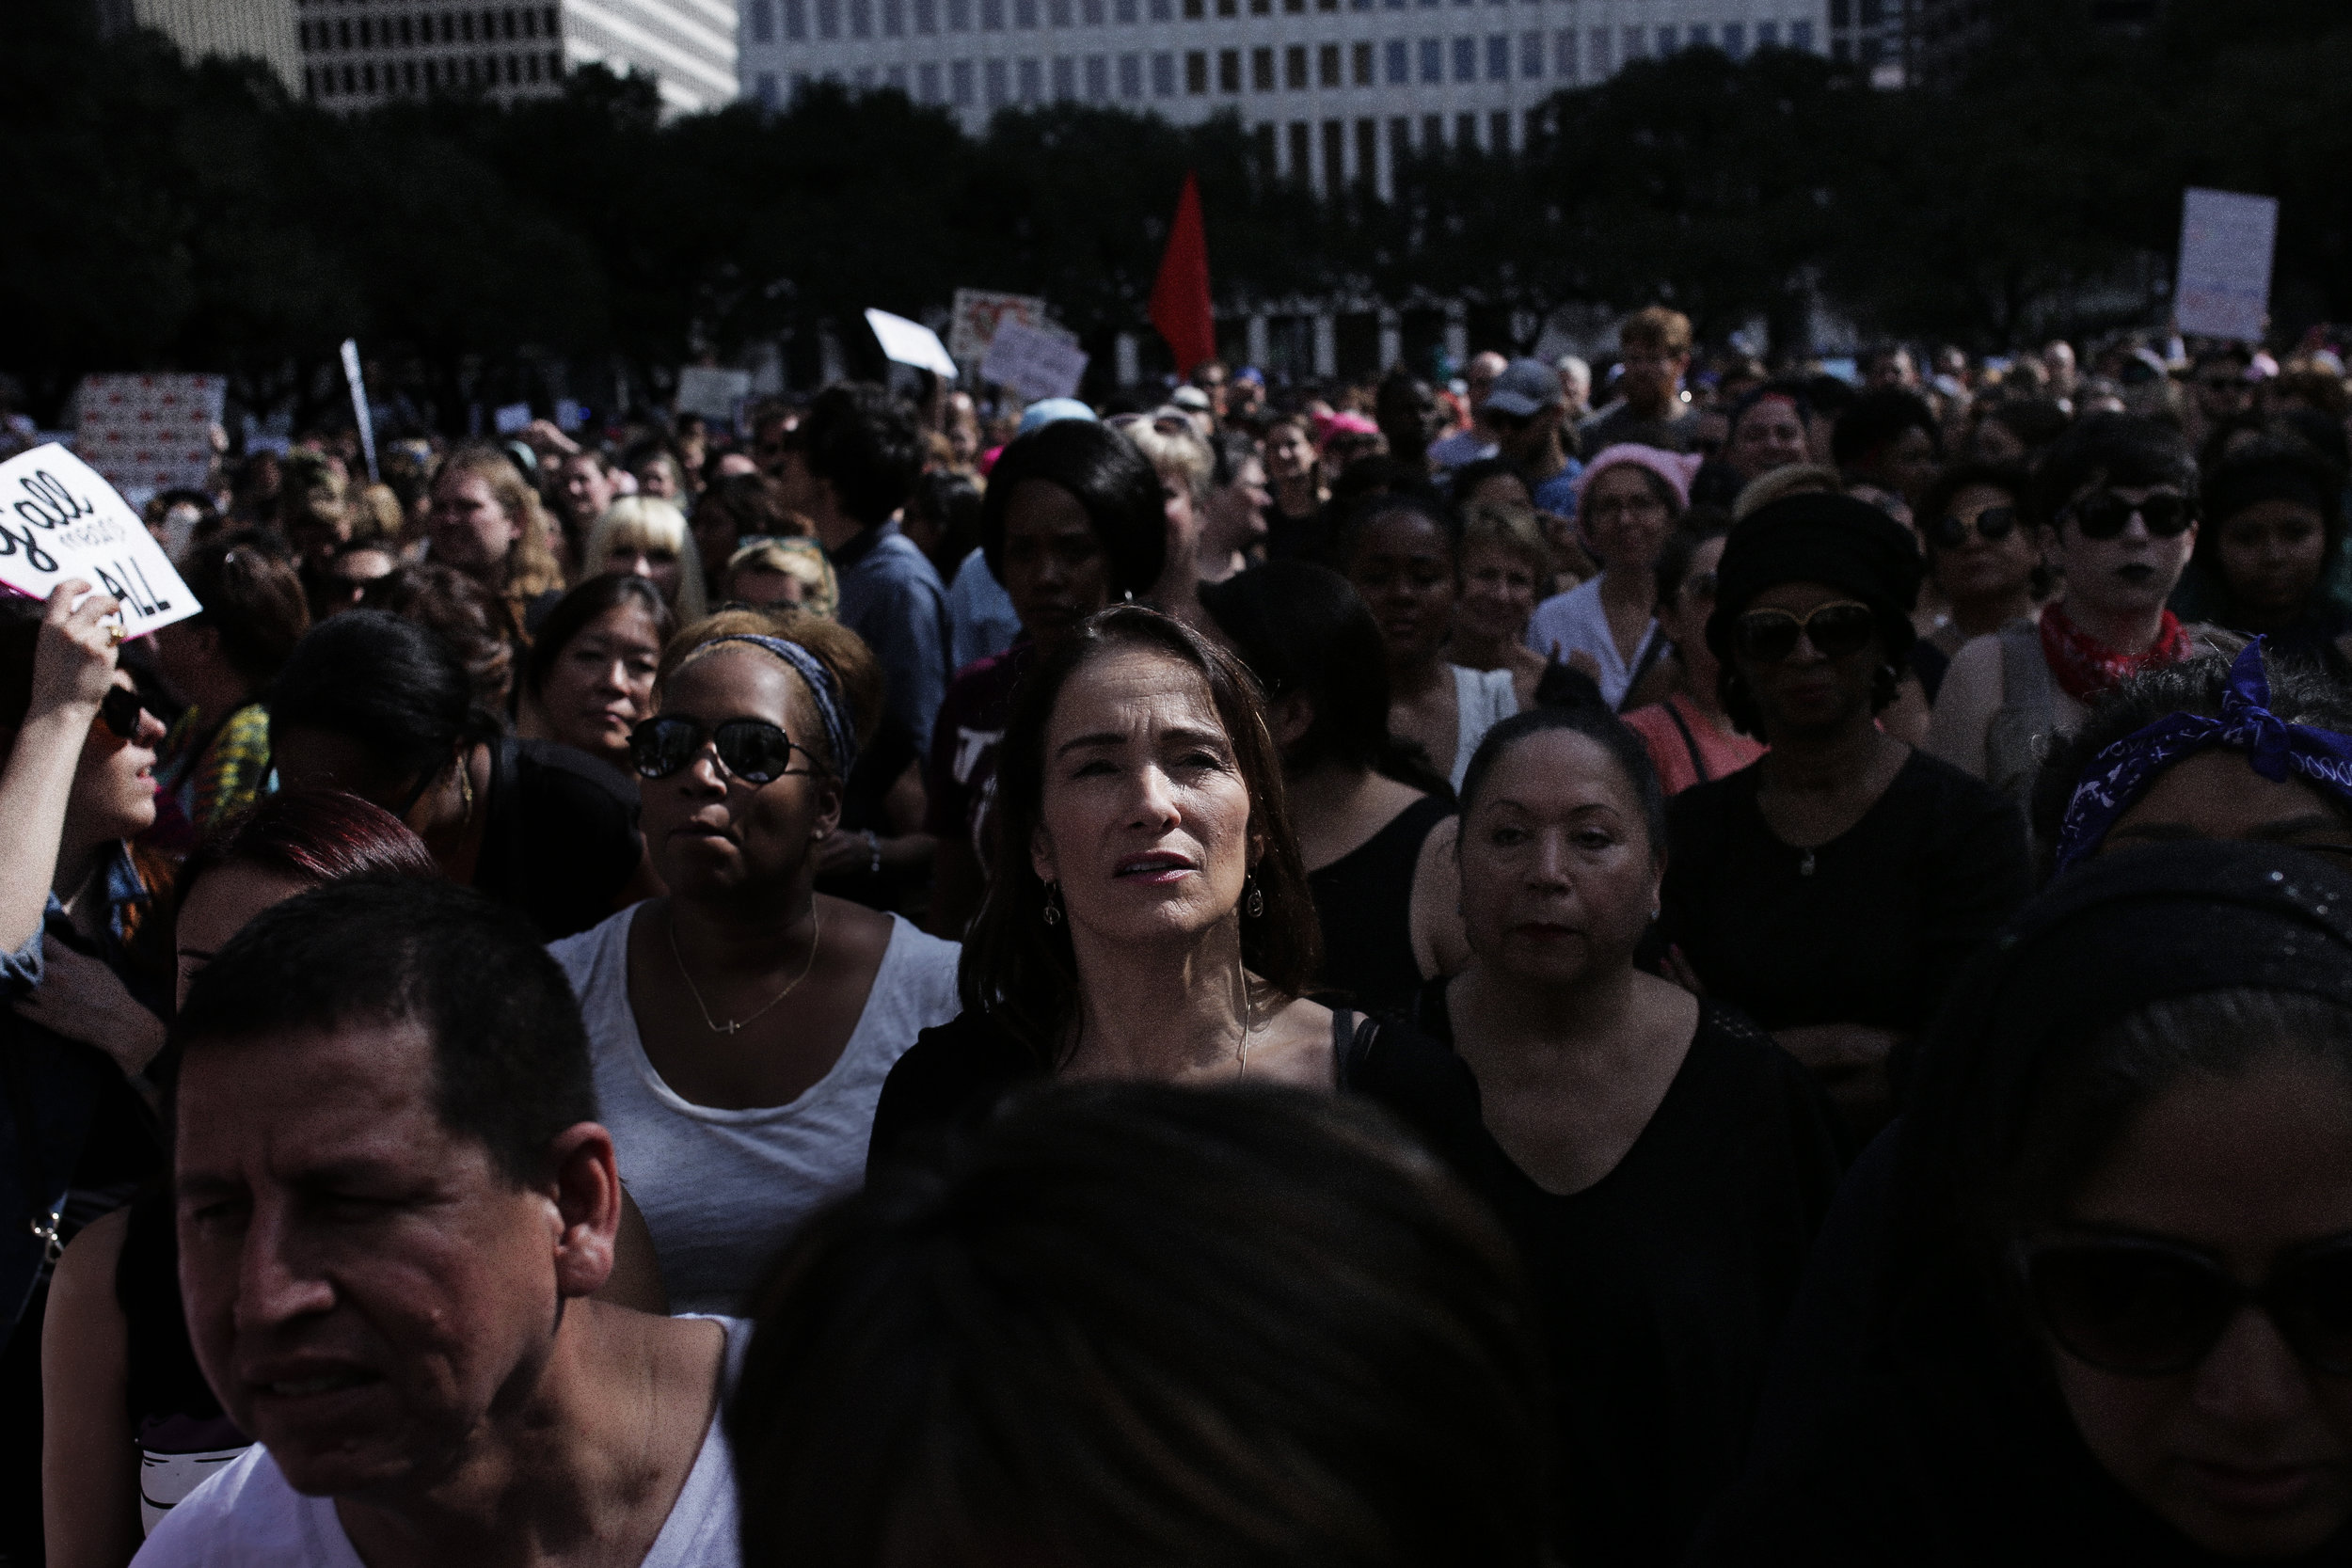 Diana Donath, along with over 20,000 other individuals, gathered at Houston's City Hall during the Houston Women's March to stand together in unity with other Women's Marches around the world.